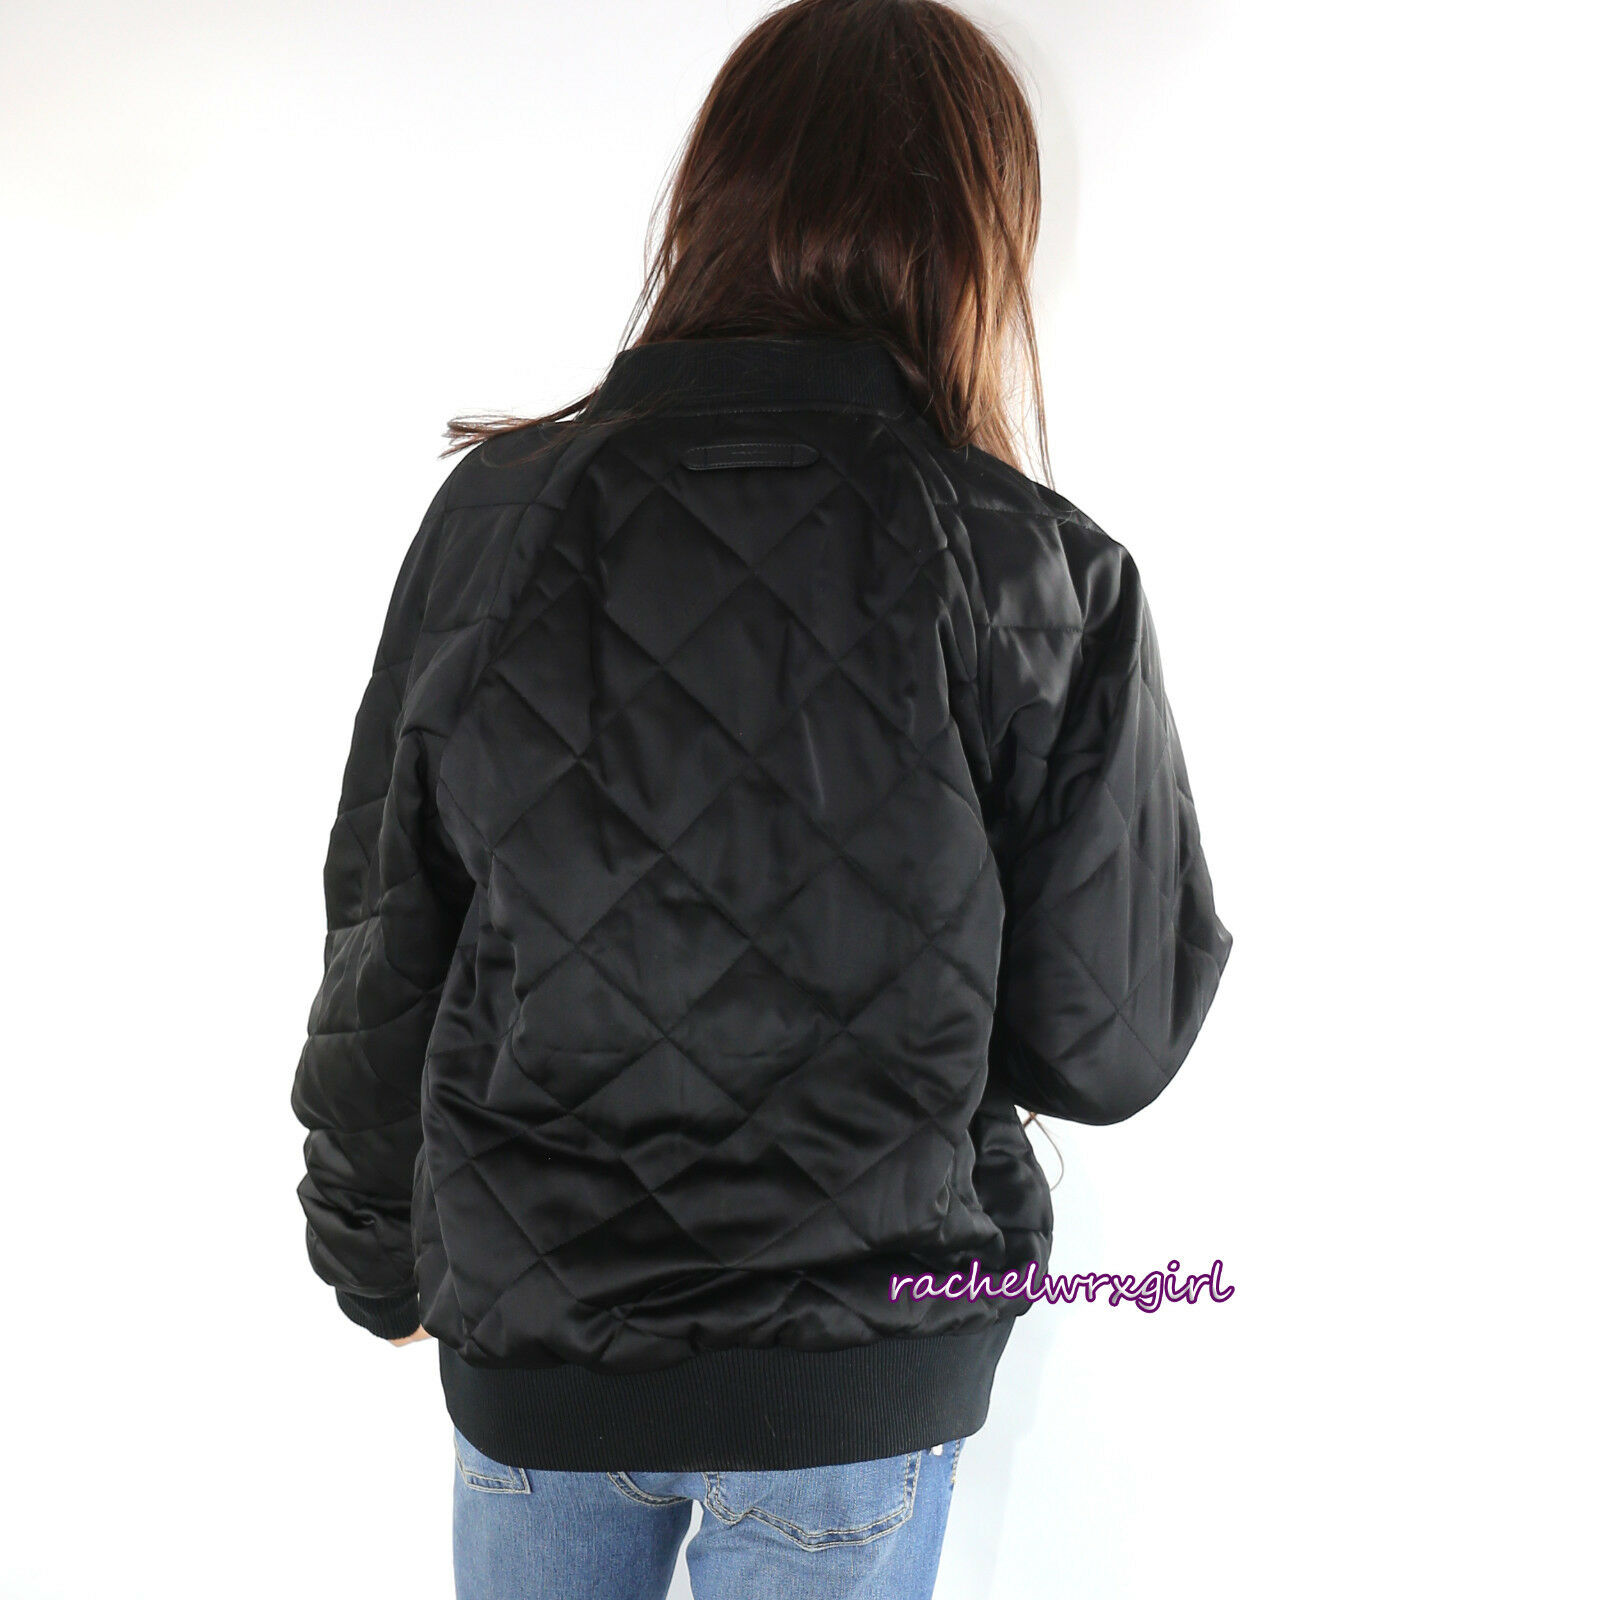 Coach Bomber Quilted Coat Jacket With Leopard Lining F54128 Medium ... : coach quilted coat - Adamdwight.com